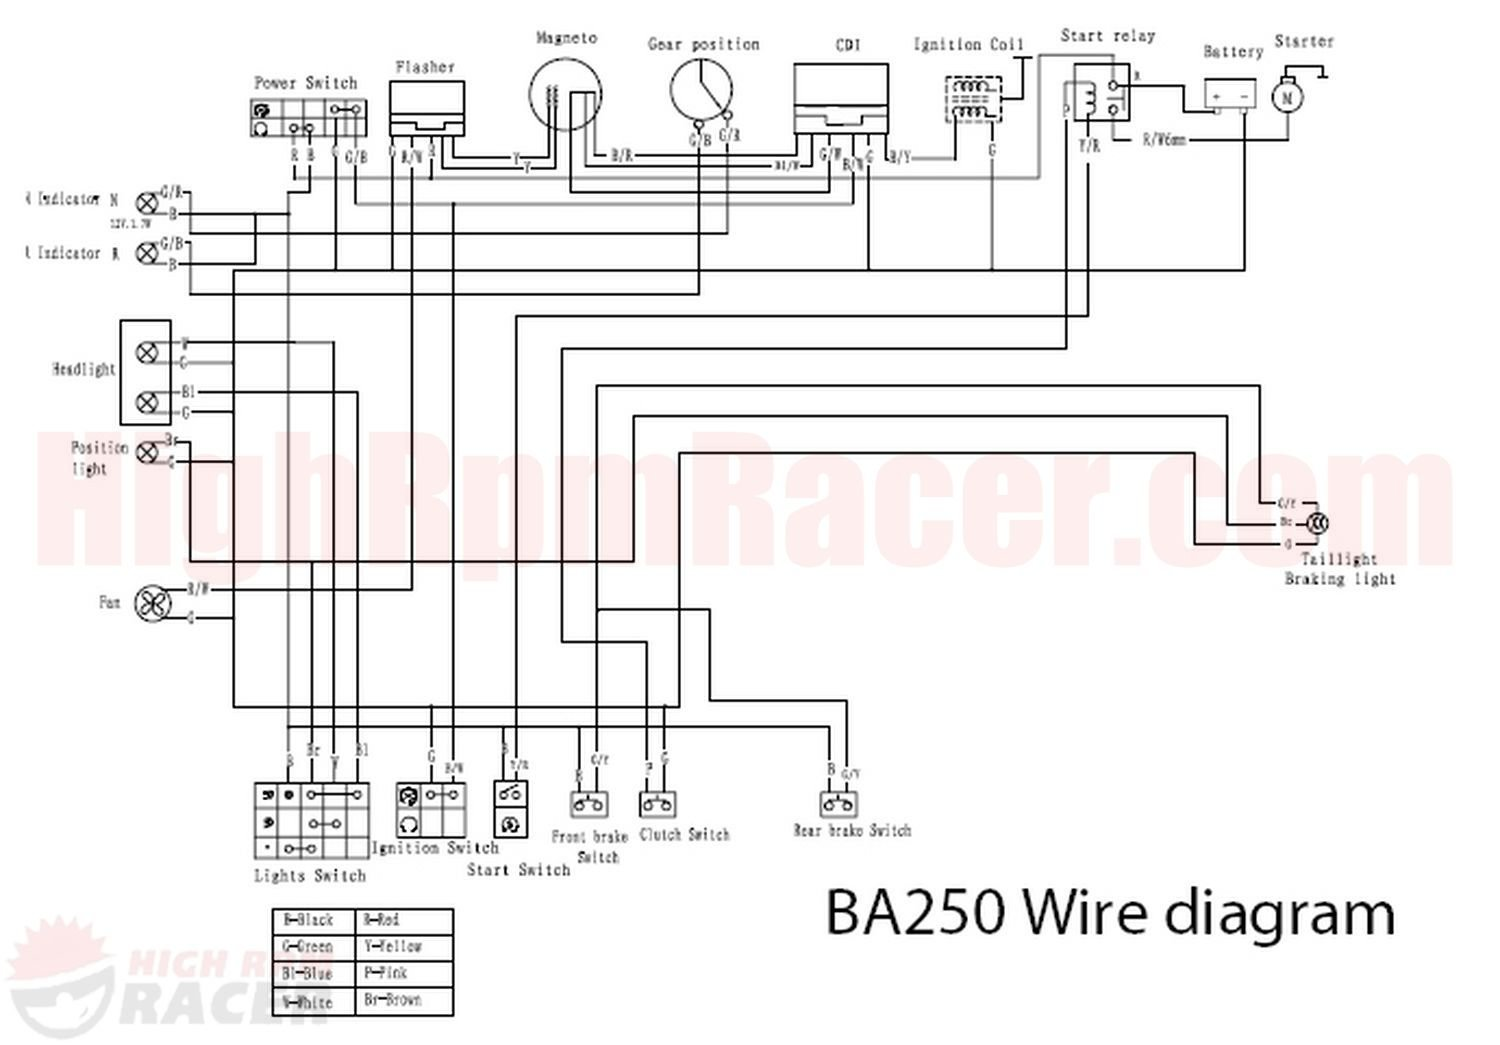 baja250_wd loncin 200cc atv wiring diagram wiring diagram simonand loncin 110 atv wiring diagram at highcare.asia